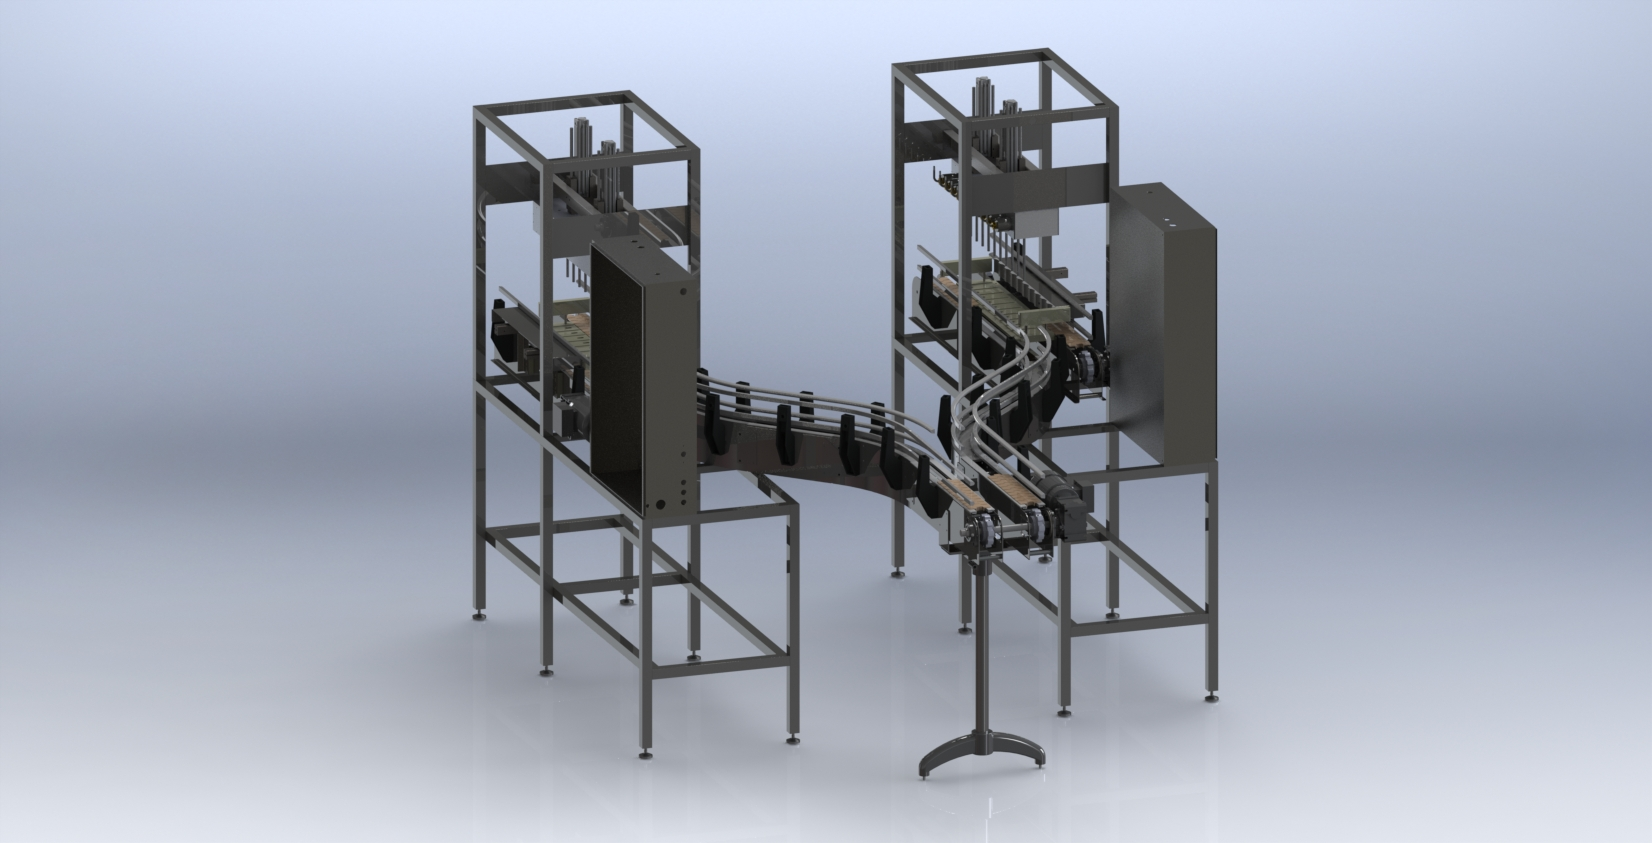 Food handling equipment created in SolidWorks